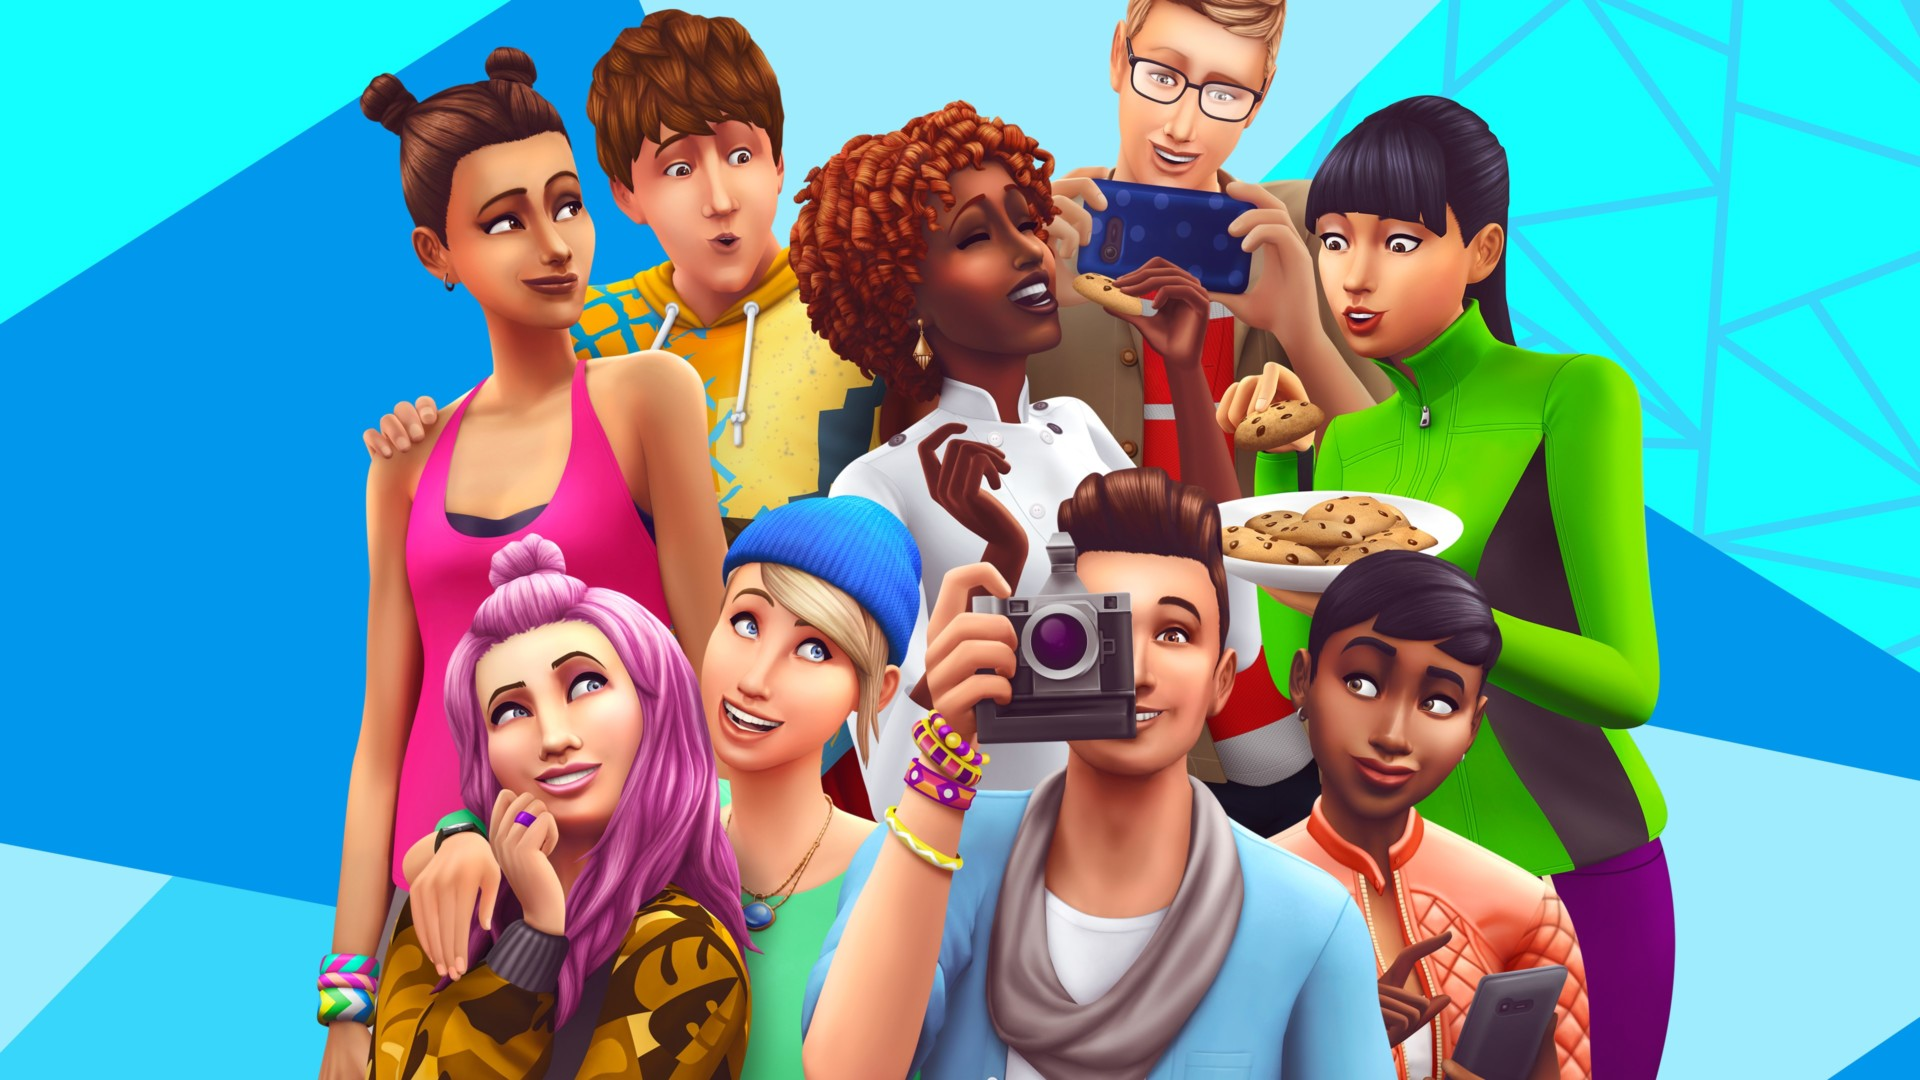 EA finally adds more The Sims 4 skin tones in new update to fans' delight